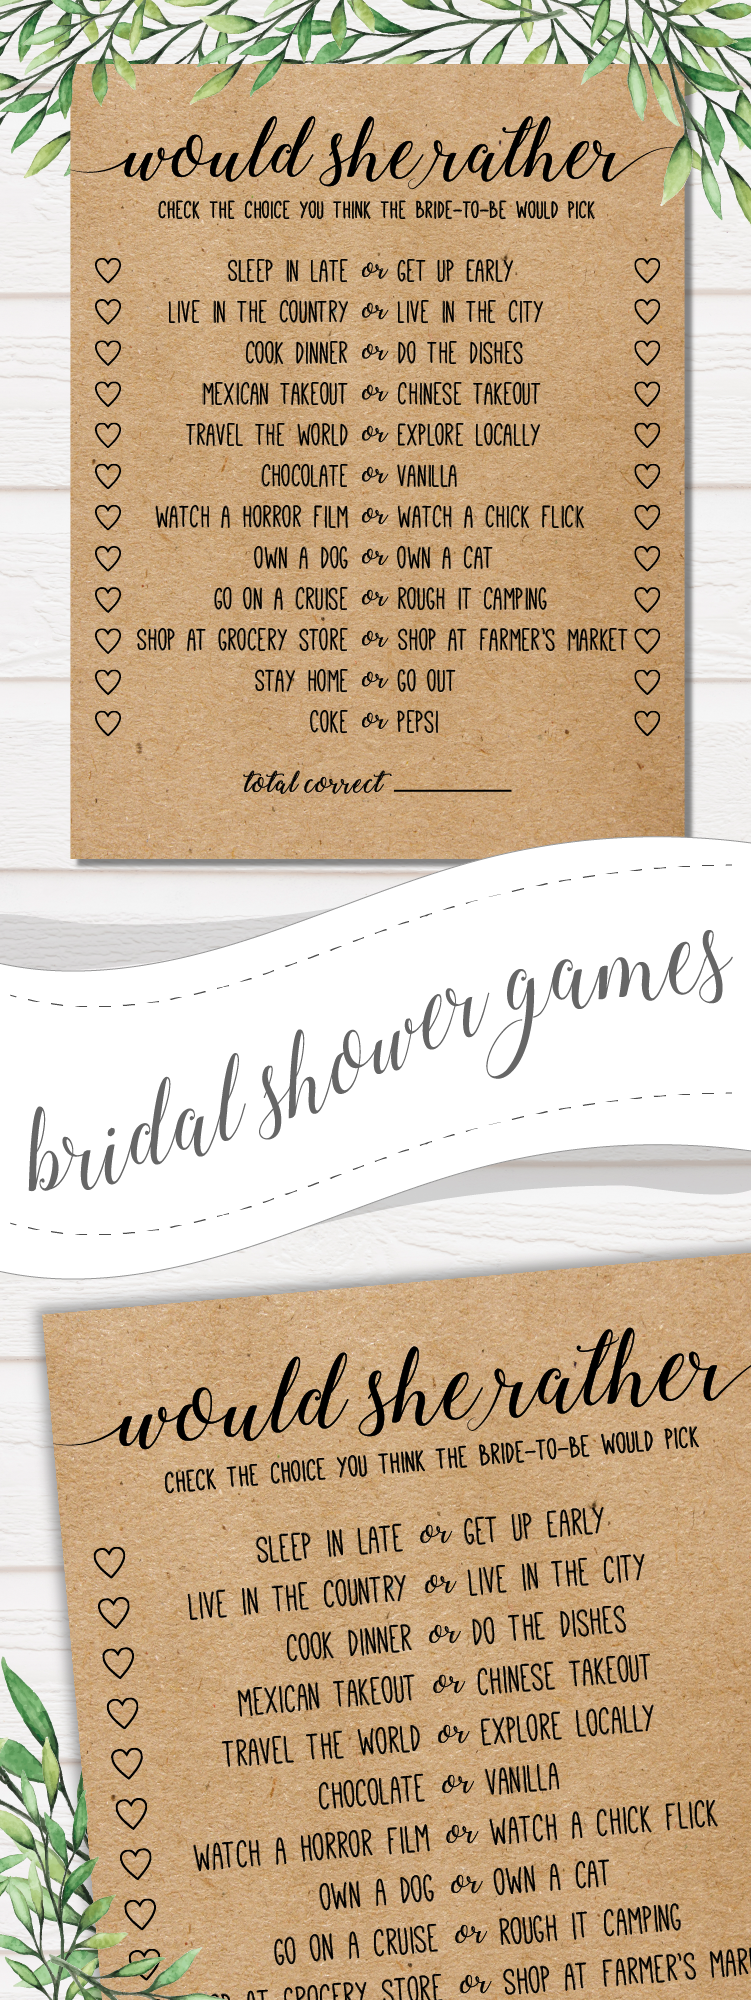 Would She Rather . Would She Rather Bridal Shower Game . Bridal Shower Games #bridalshowerdecorations